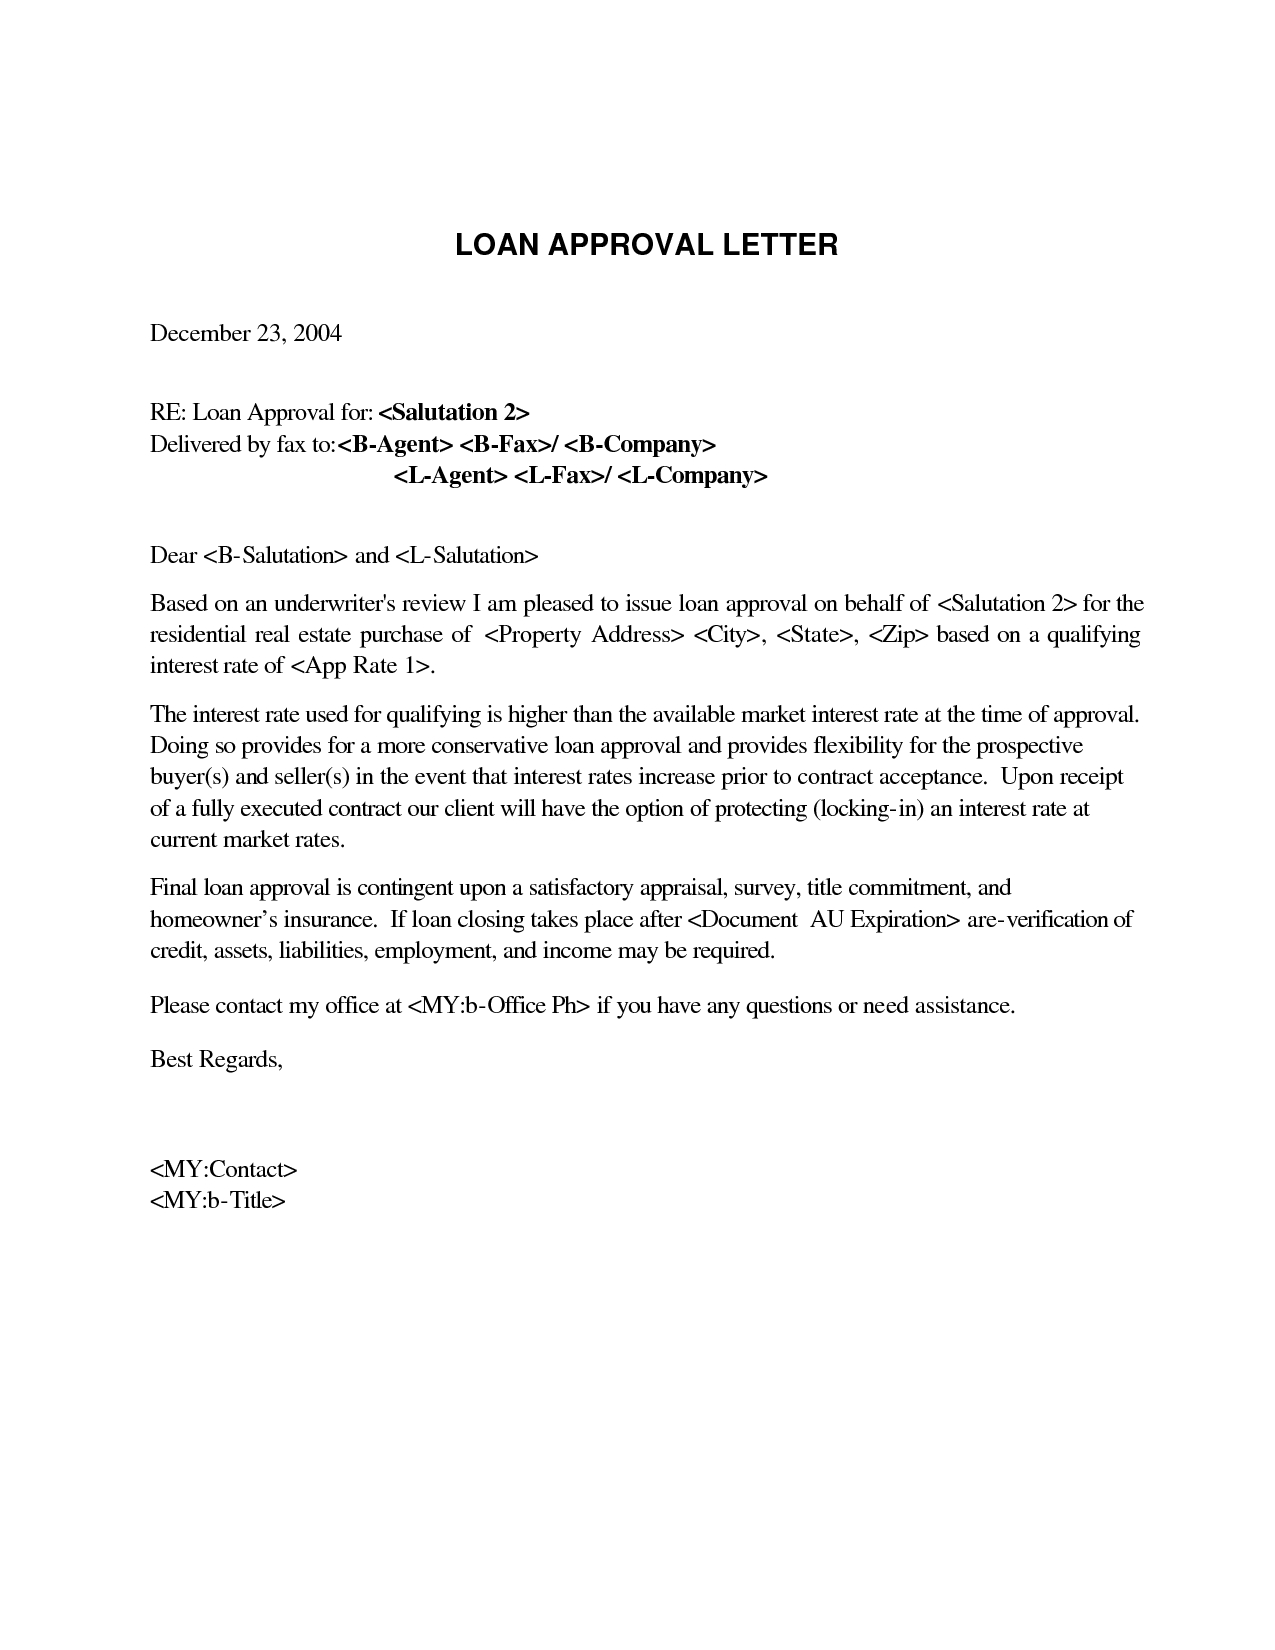 Mortgage Pre Approval Letter Template - How to Write An Approval Letter Gallery Letter format formal Sample